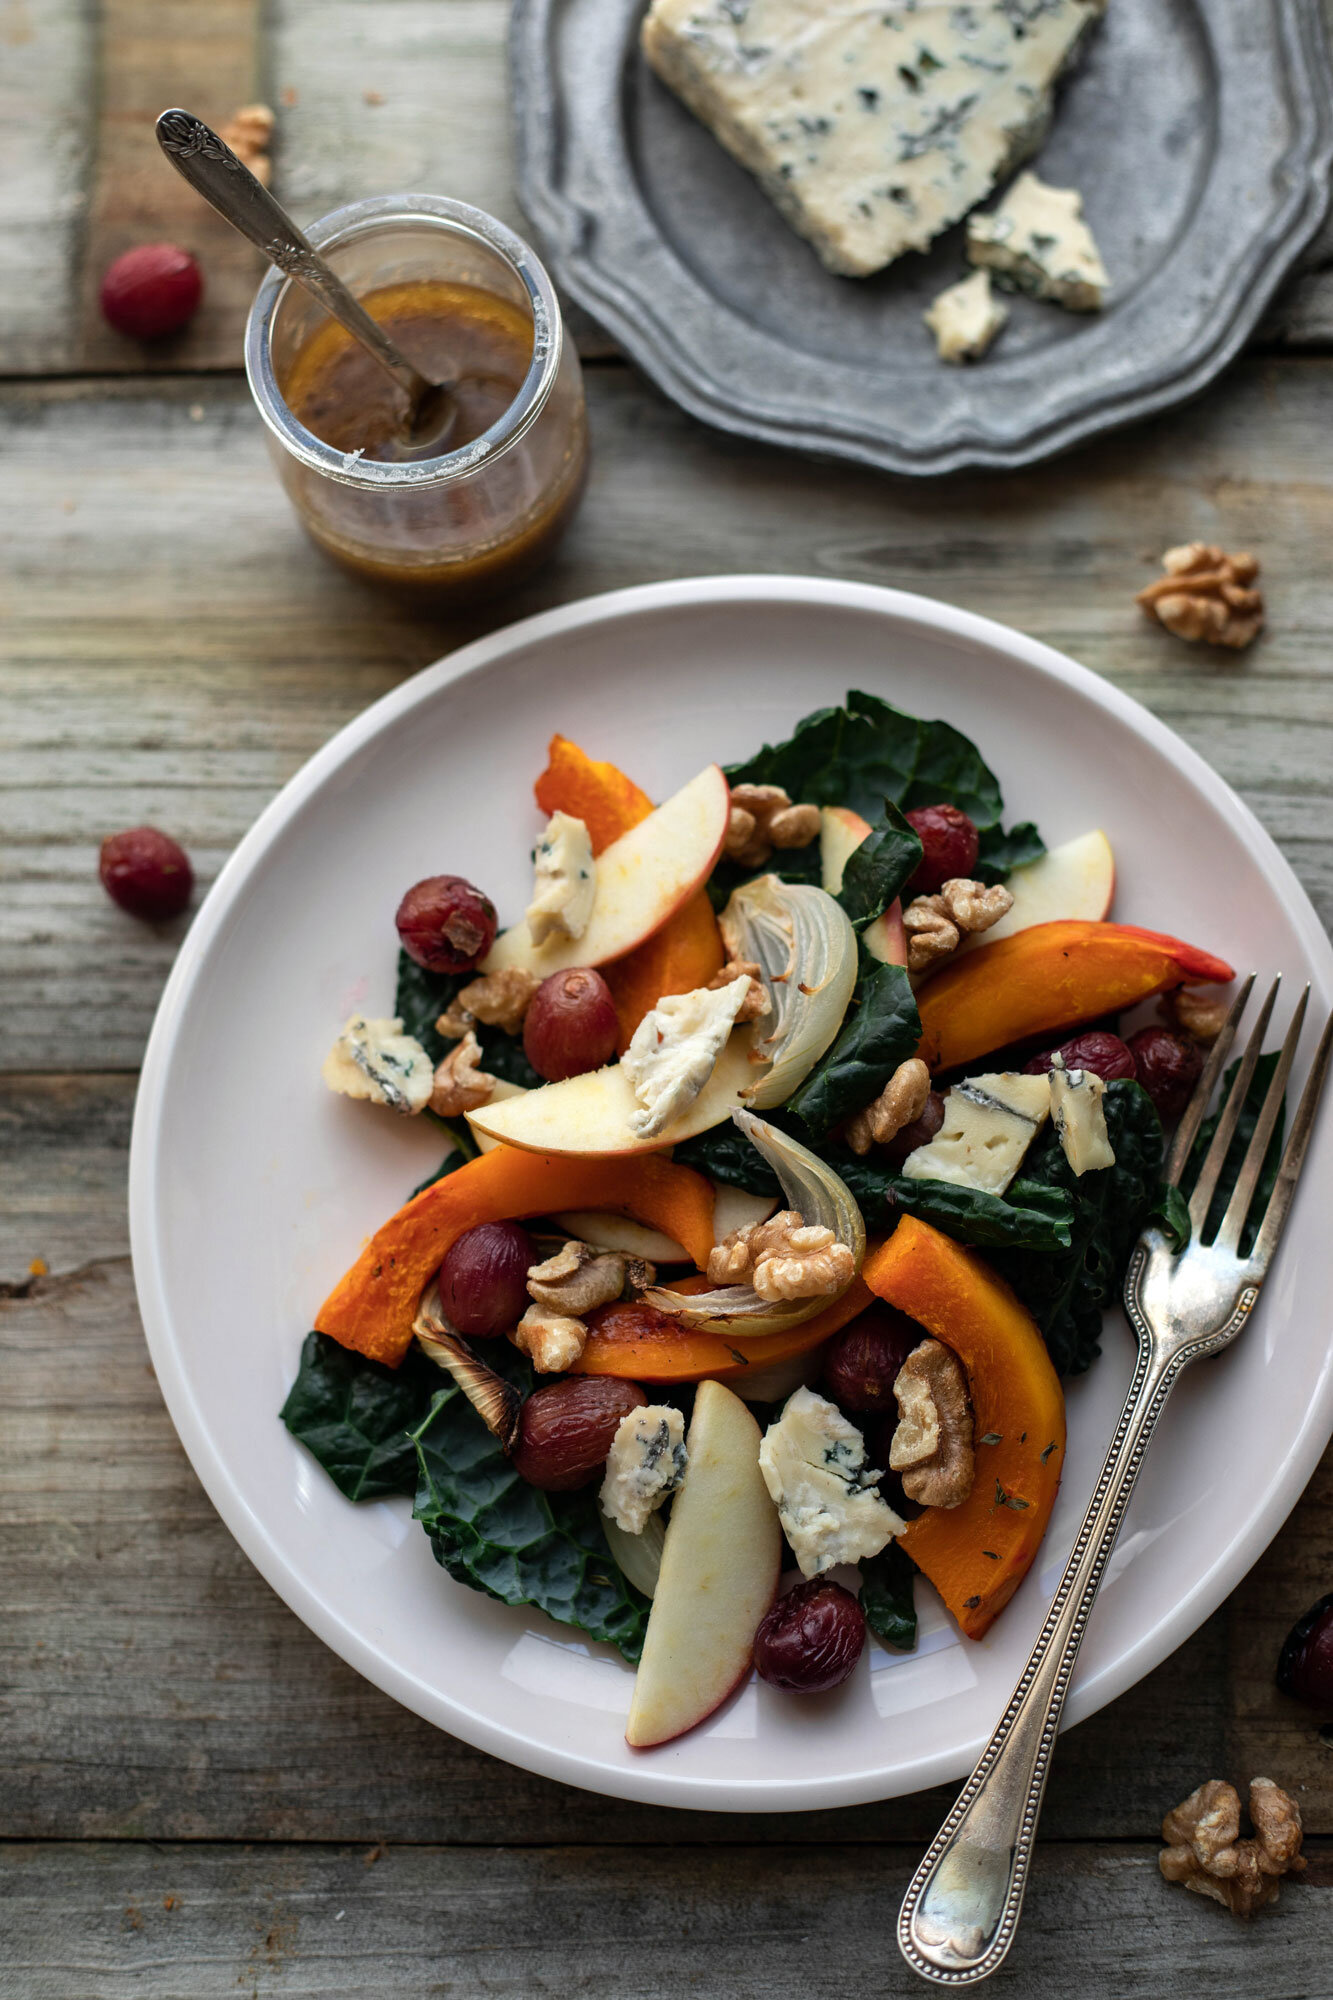 tray bake autumn salad with squash, roasted grapes, apples and blue cheese